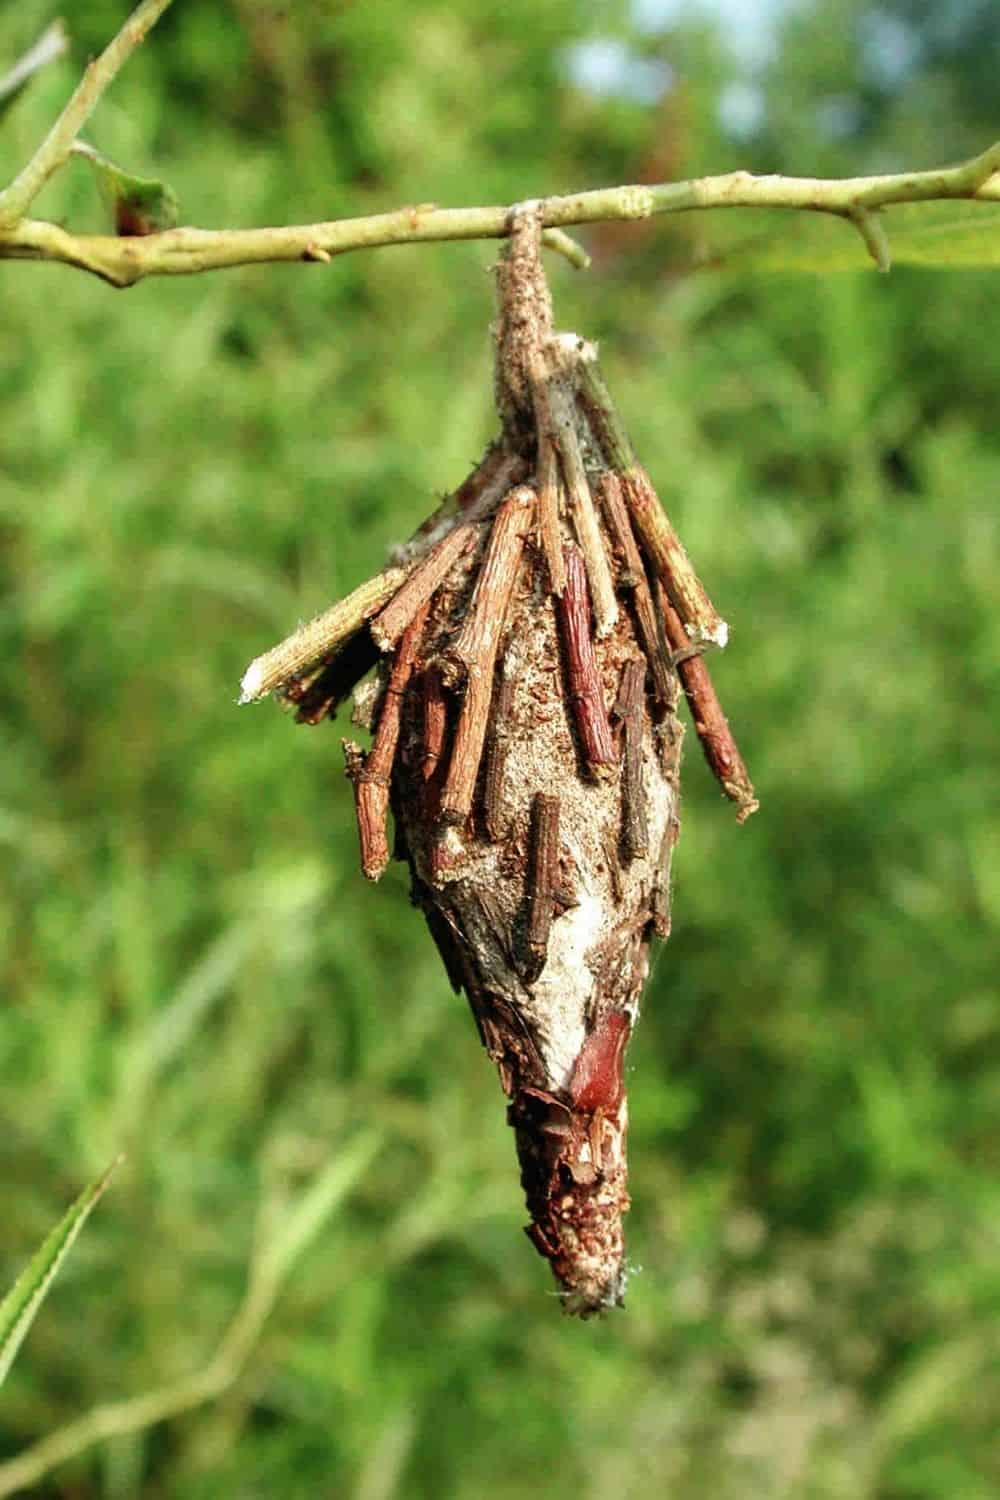 bagworm pouch hanging from a tree branch